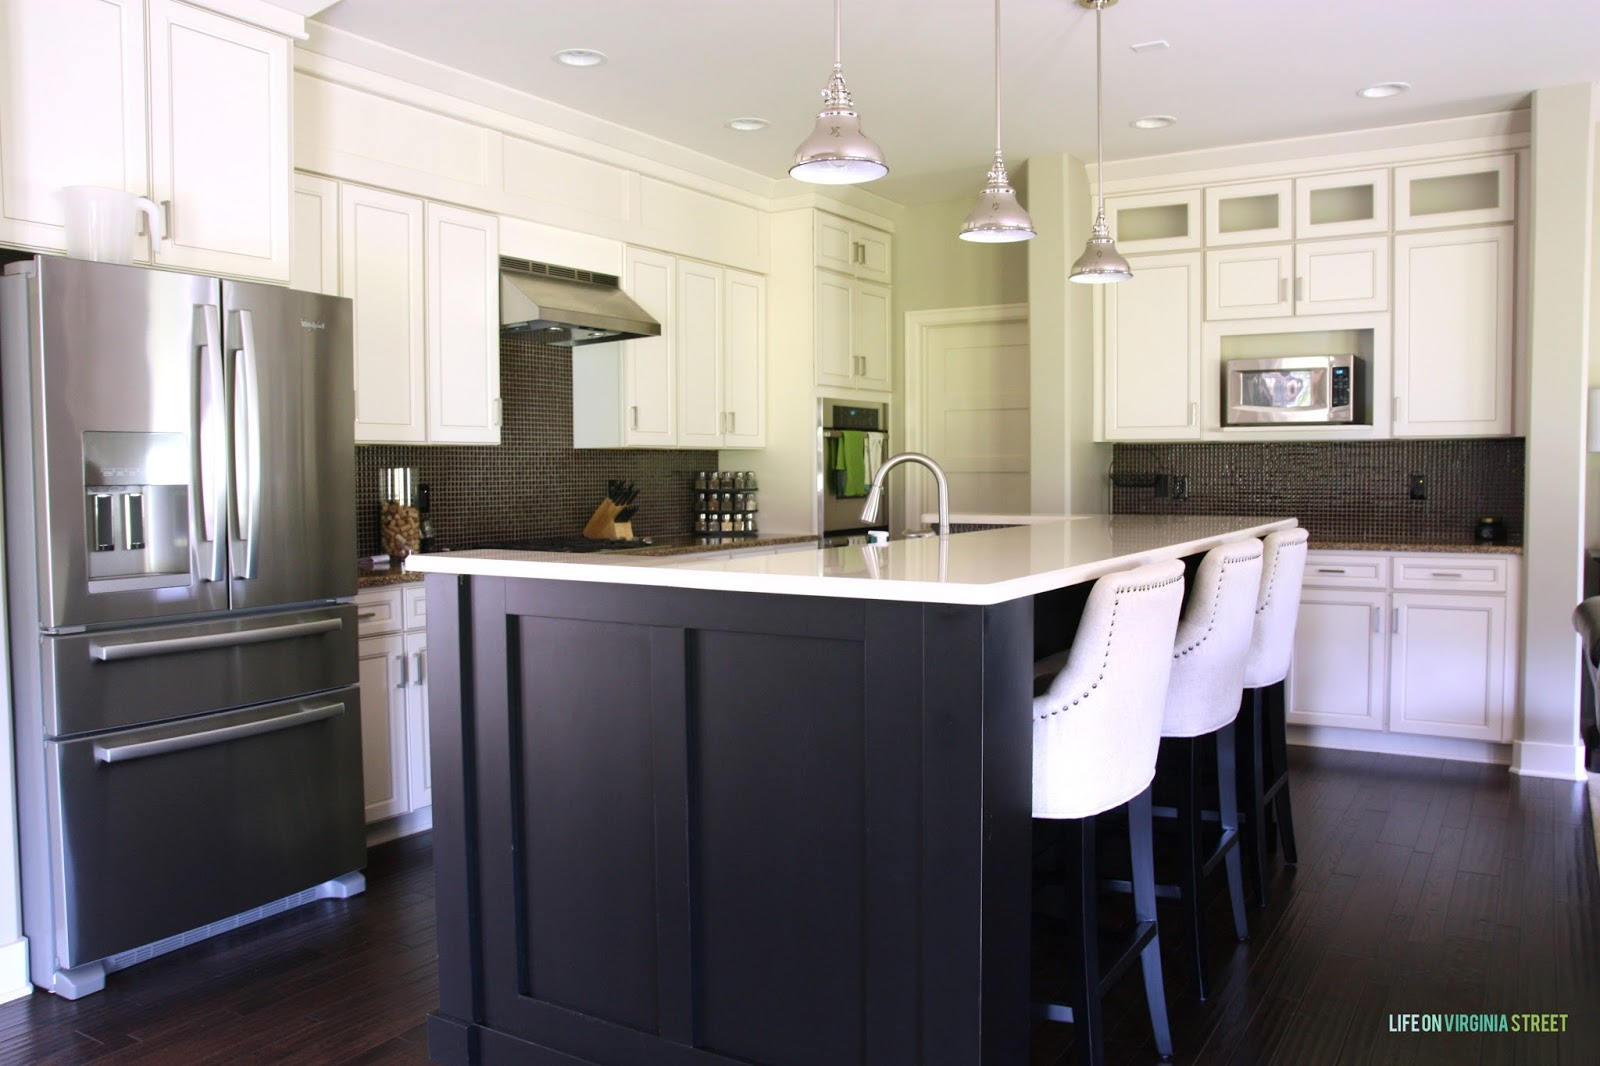 Photo tour of our current home life on virginia street for Board and batten kitchen cabinets